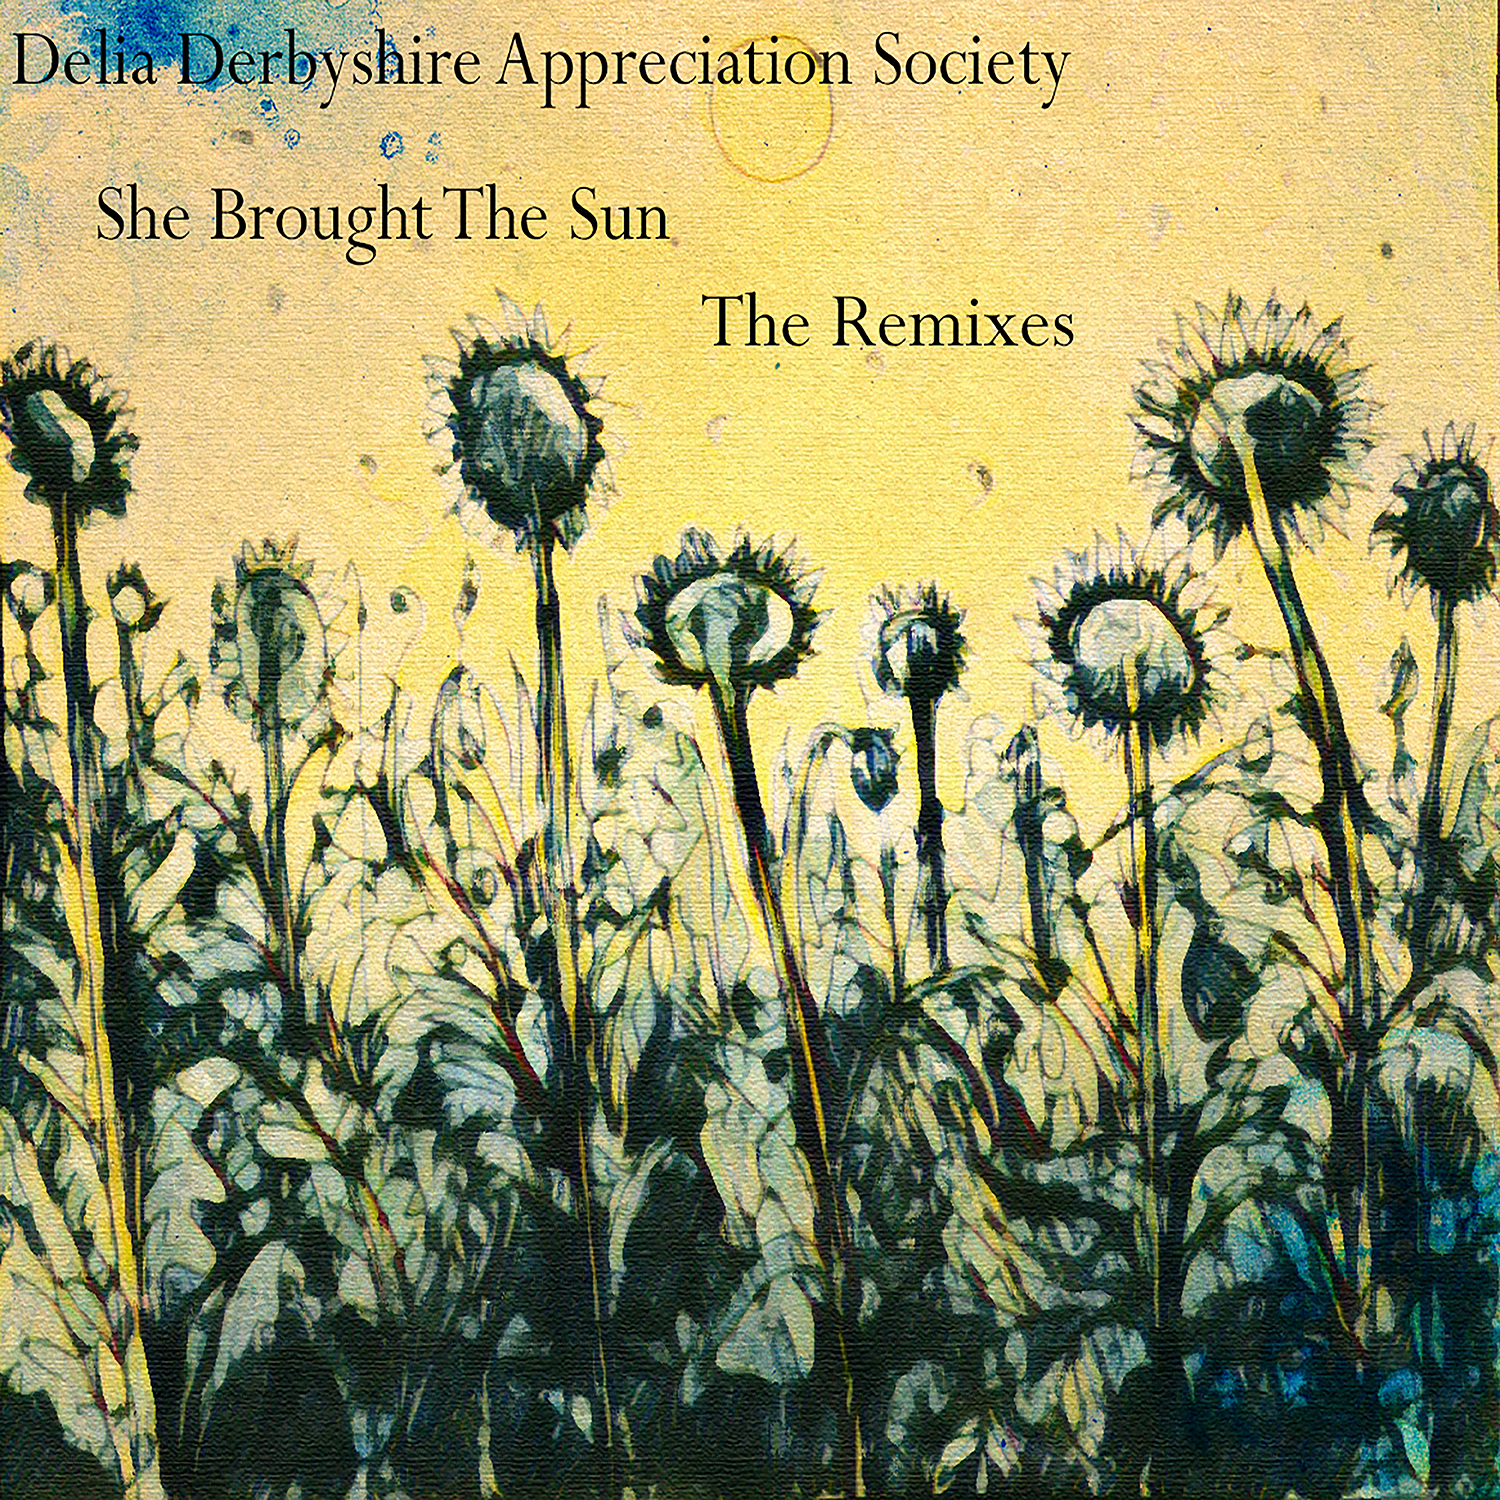 Delia Derbyshire Appreciation Society – She Brought the Sun – The Remixes